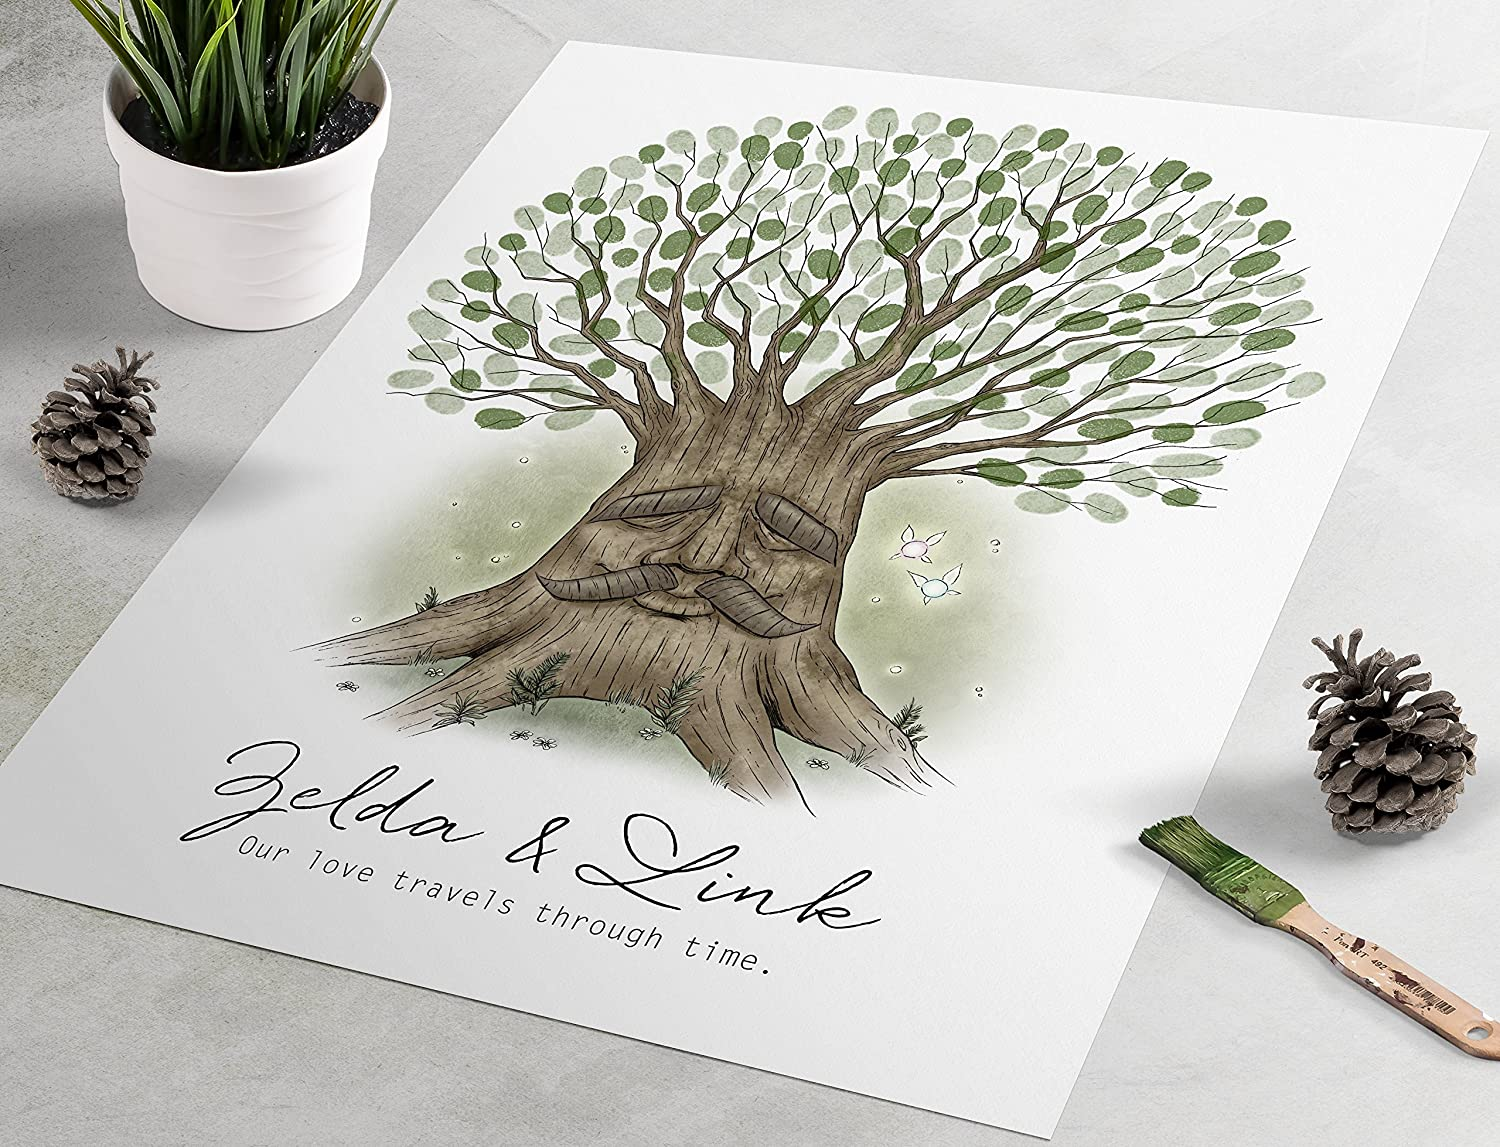 Legend of Zelda Wedding Guest Book: Deku Tree fingerprint guest book, fingerprint tree, thumbprint tree, nerdy guestbook alternative